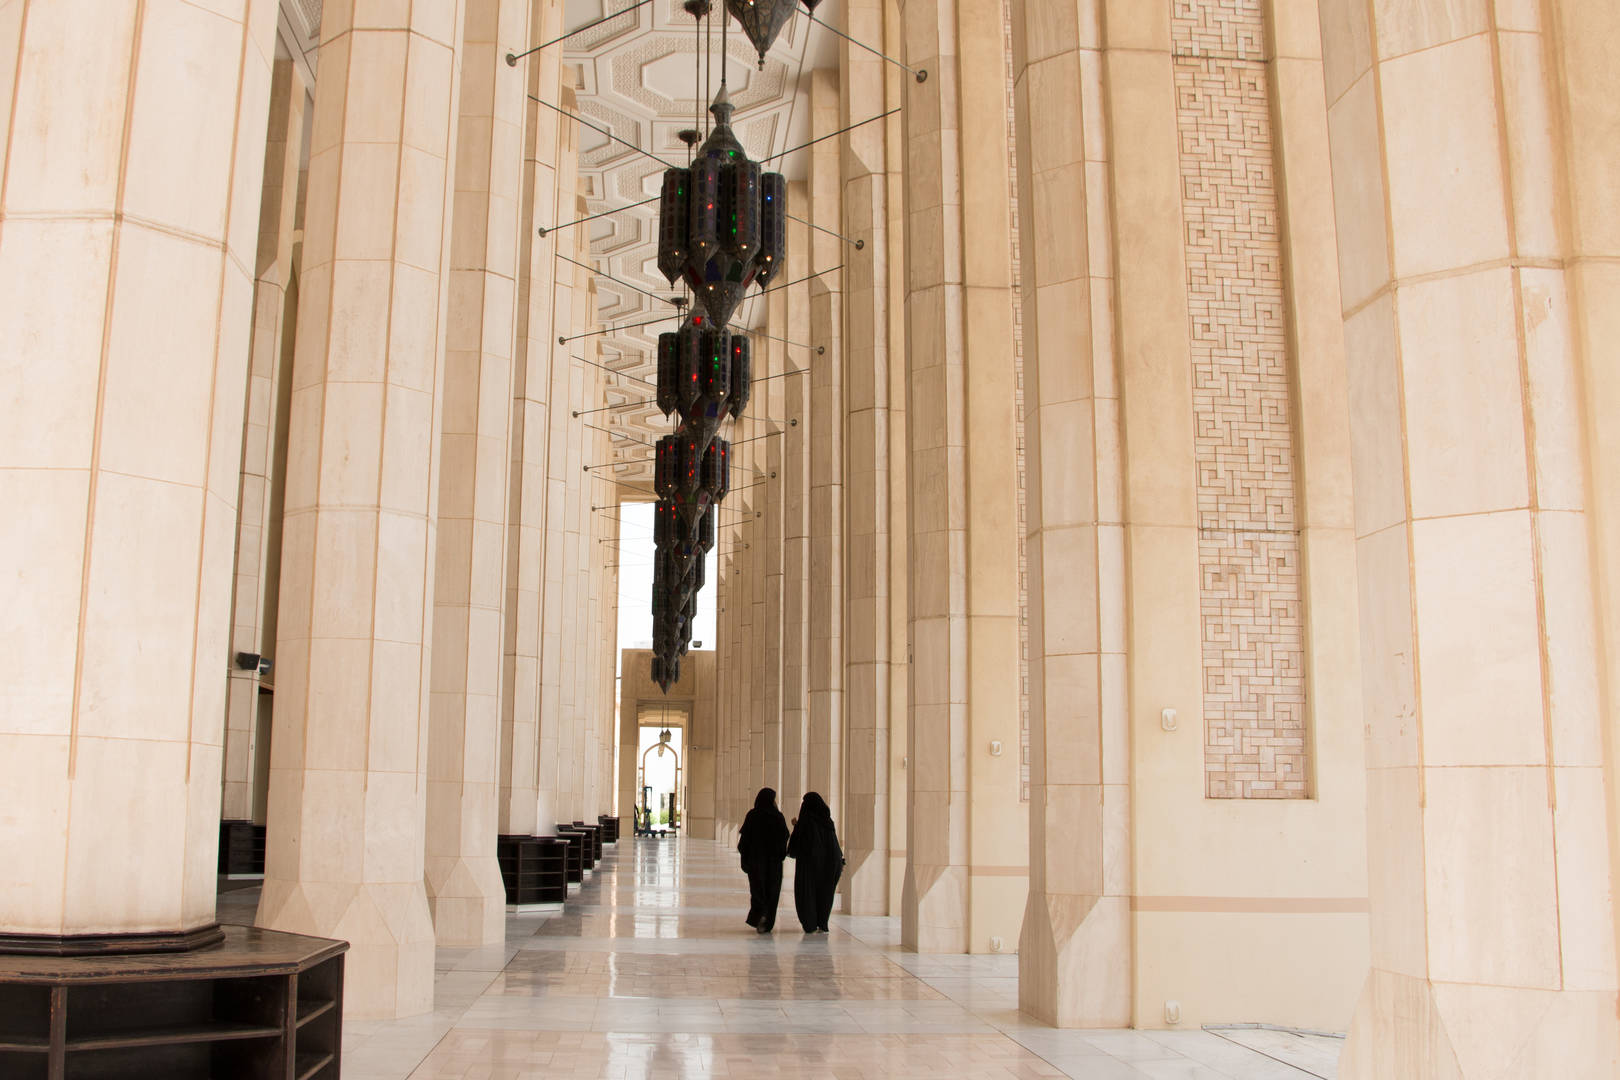 Inside the Grand Mosque in Kuwait